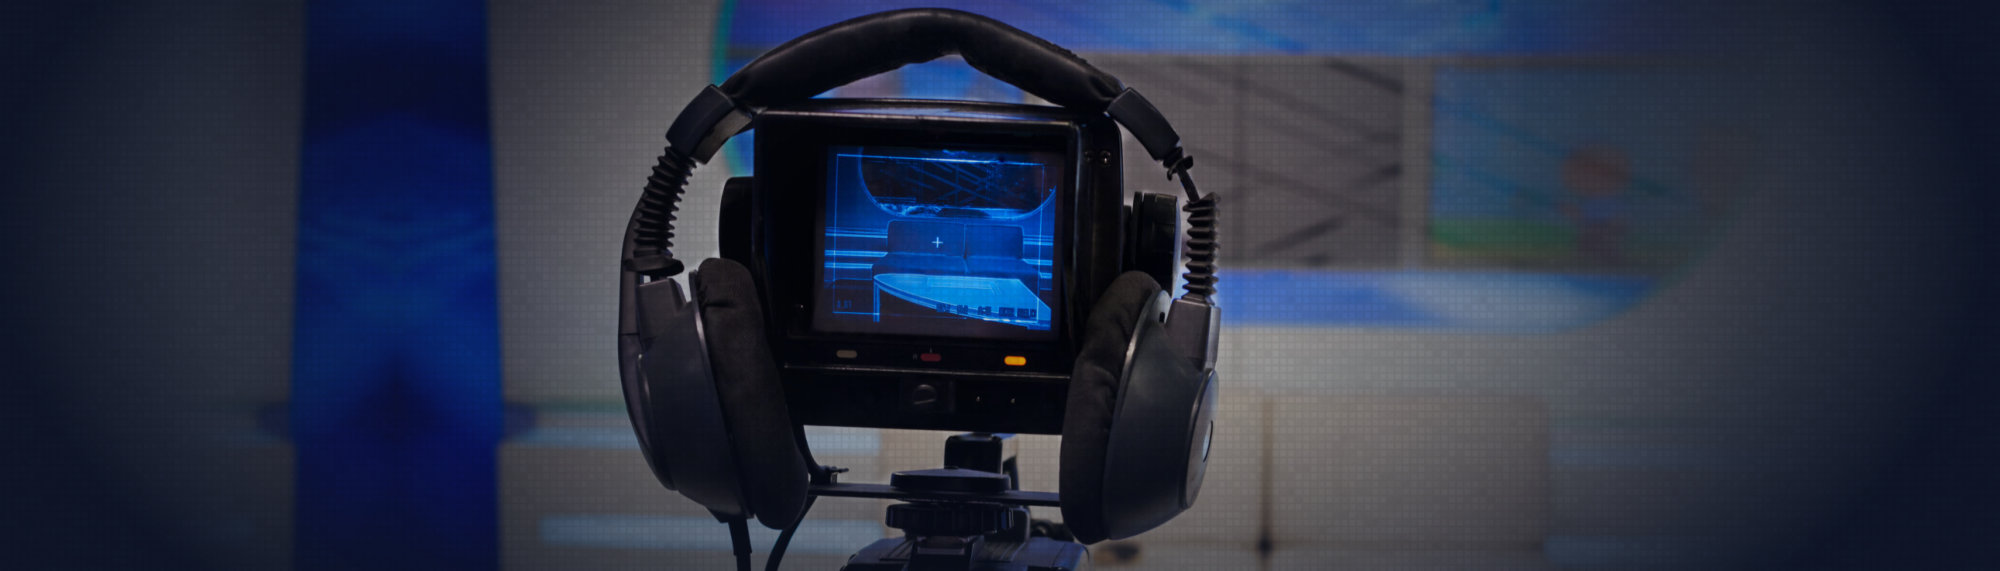 video camera and headset